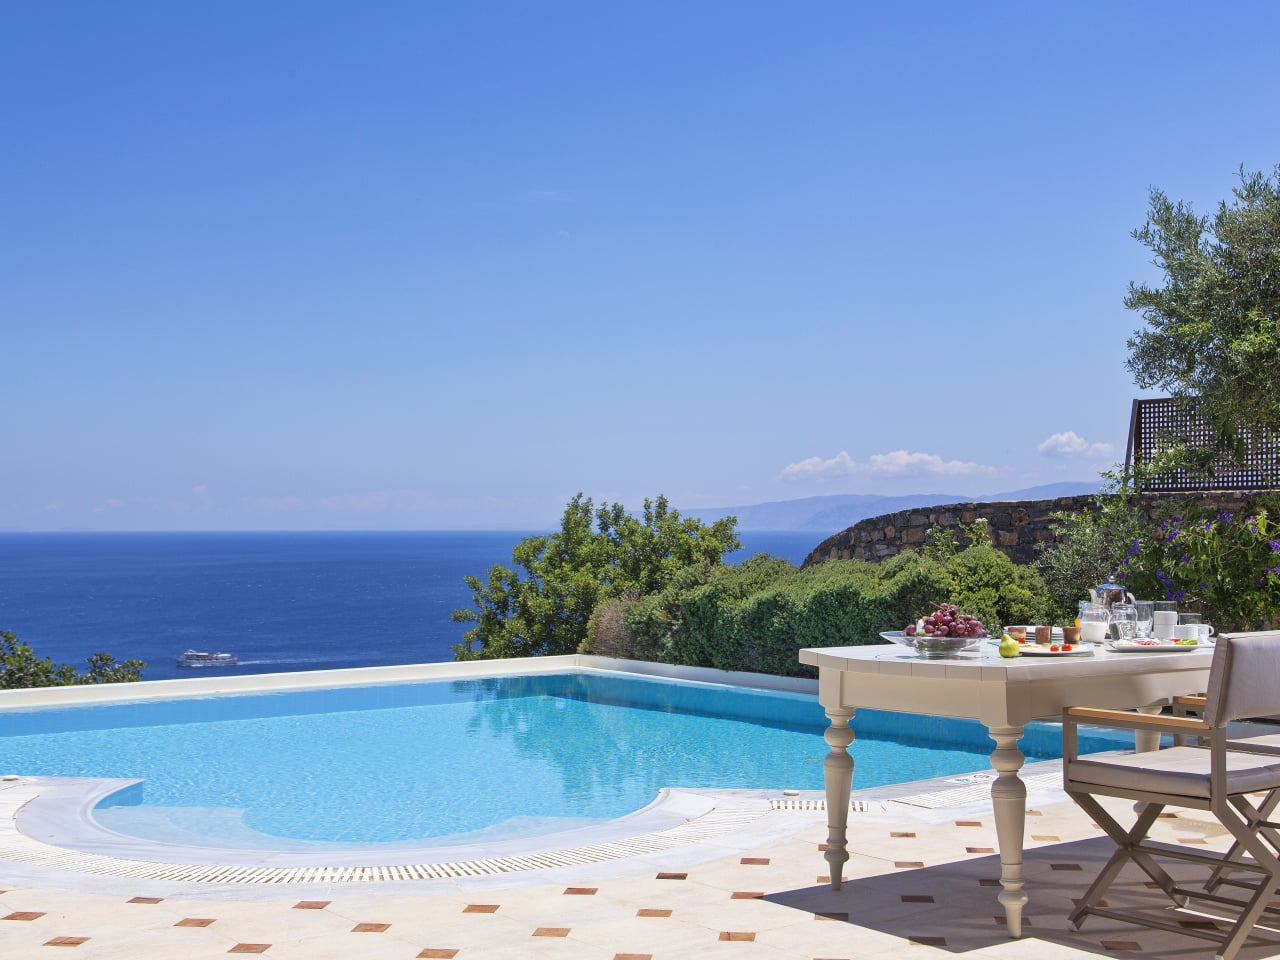 Greetings & Offers From Elounda Gulf Villas & Suites